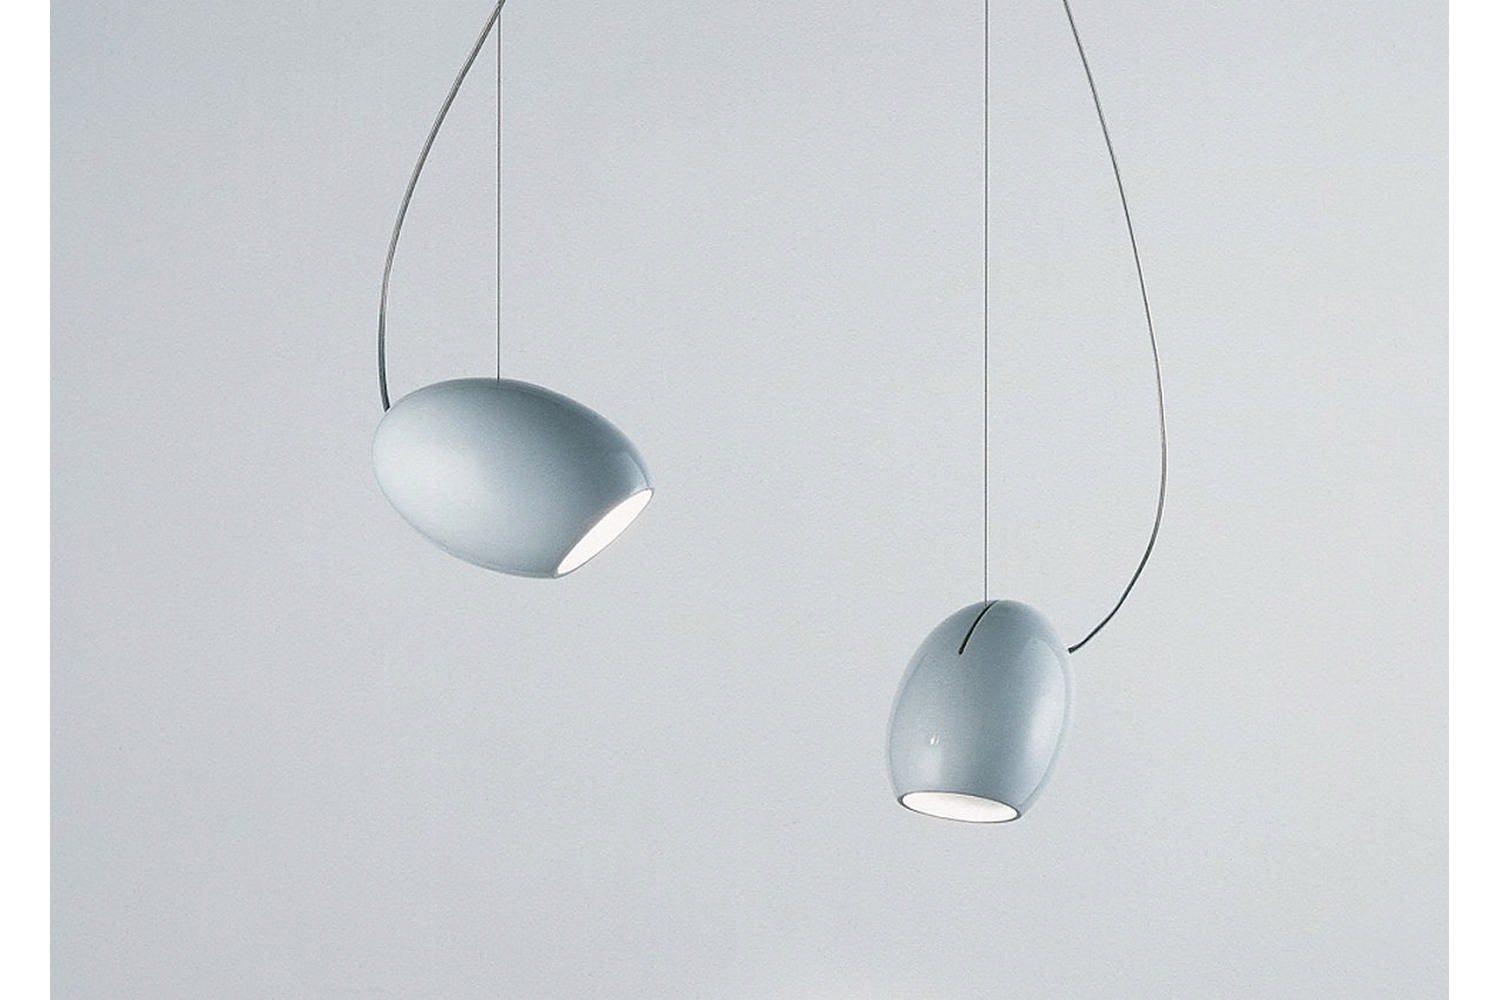 Off Off Suspension Lamp by Ingo Maurer und Team for Ingo Maurer